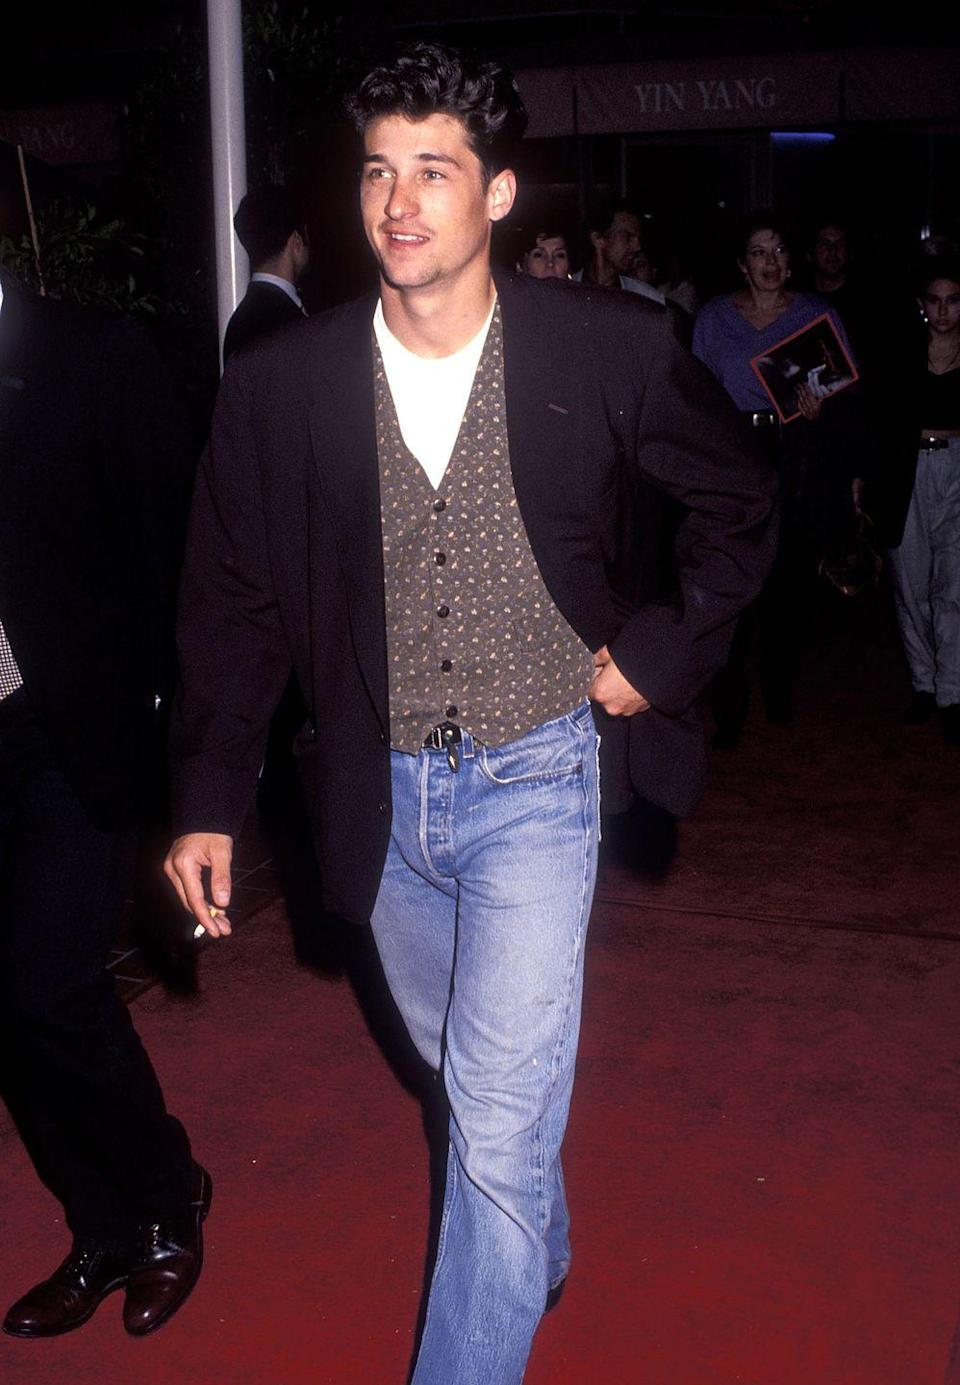 <p>Wearing a suit vest without a jacket or with a jacket that doesn't match is generally something we'd keep back in the archives. But if you ditched the vest and opted for the tee under a cardigan, you'd be 2021 approved.</p>